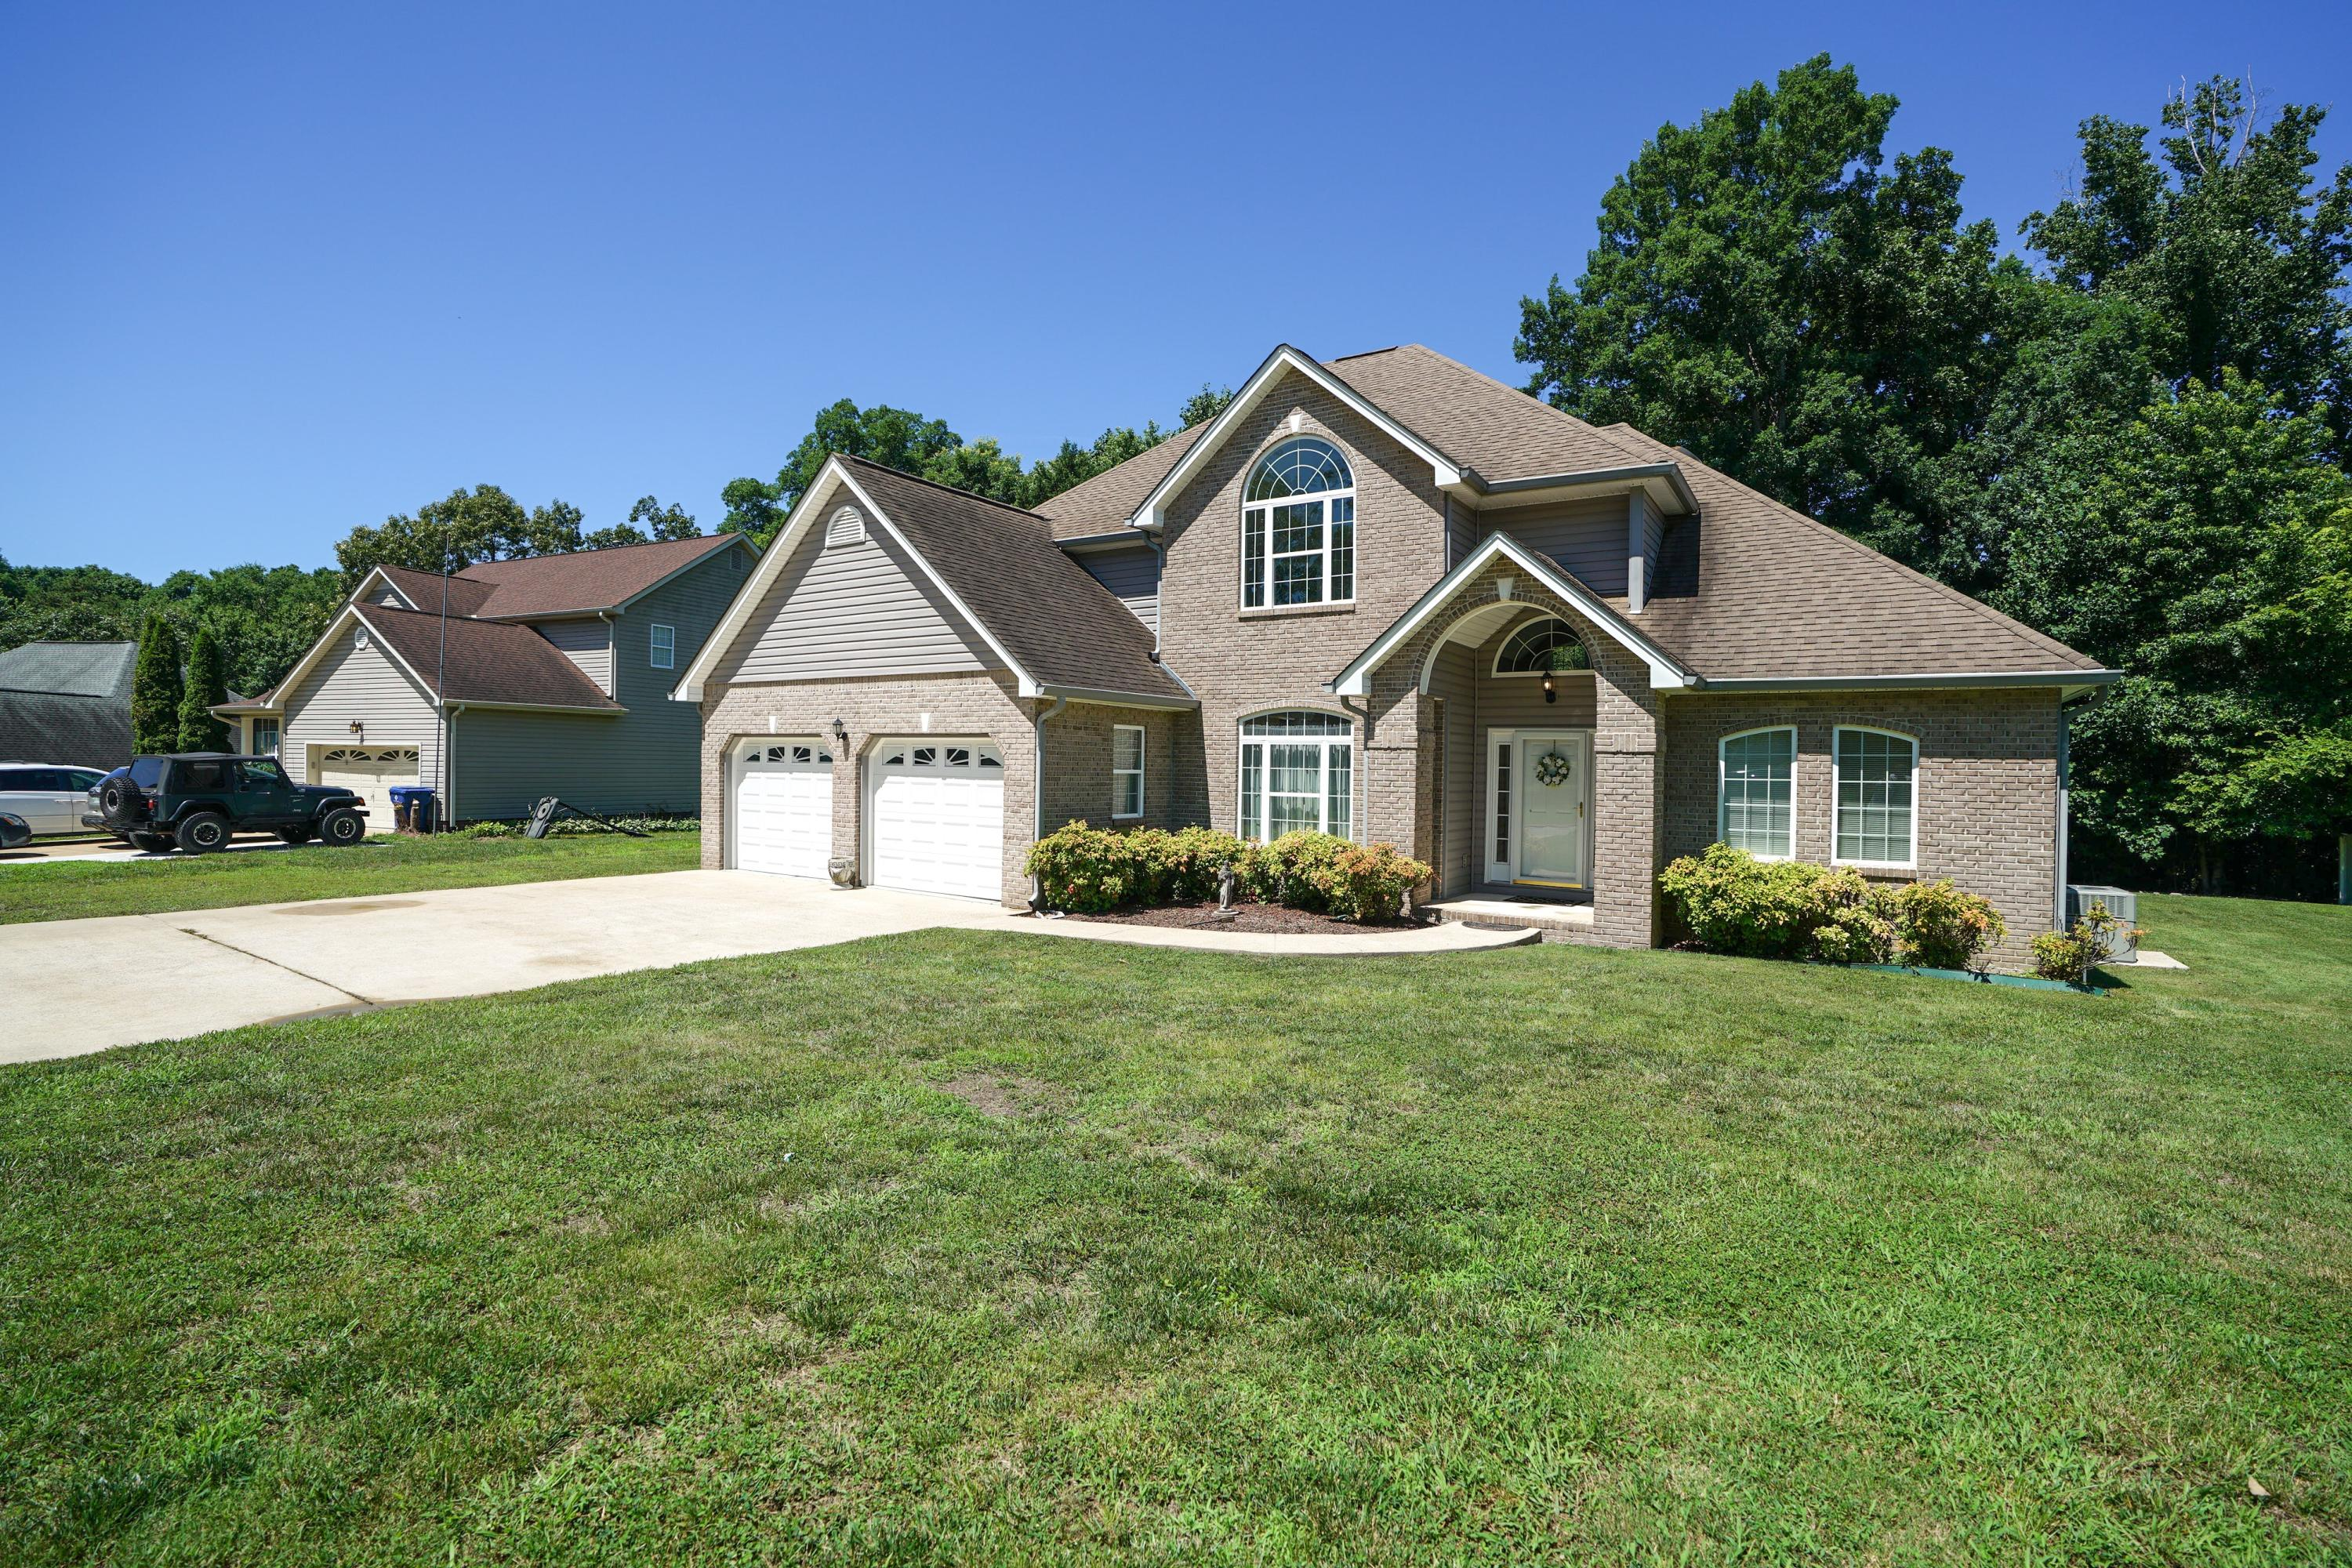 2943 Chimney Lake Cir, Soddy Daisy, TN 37379